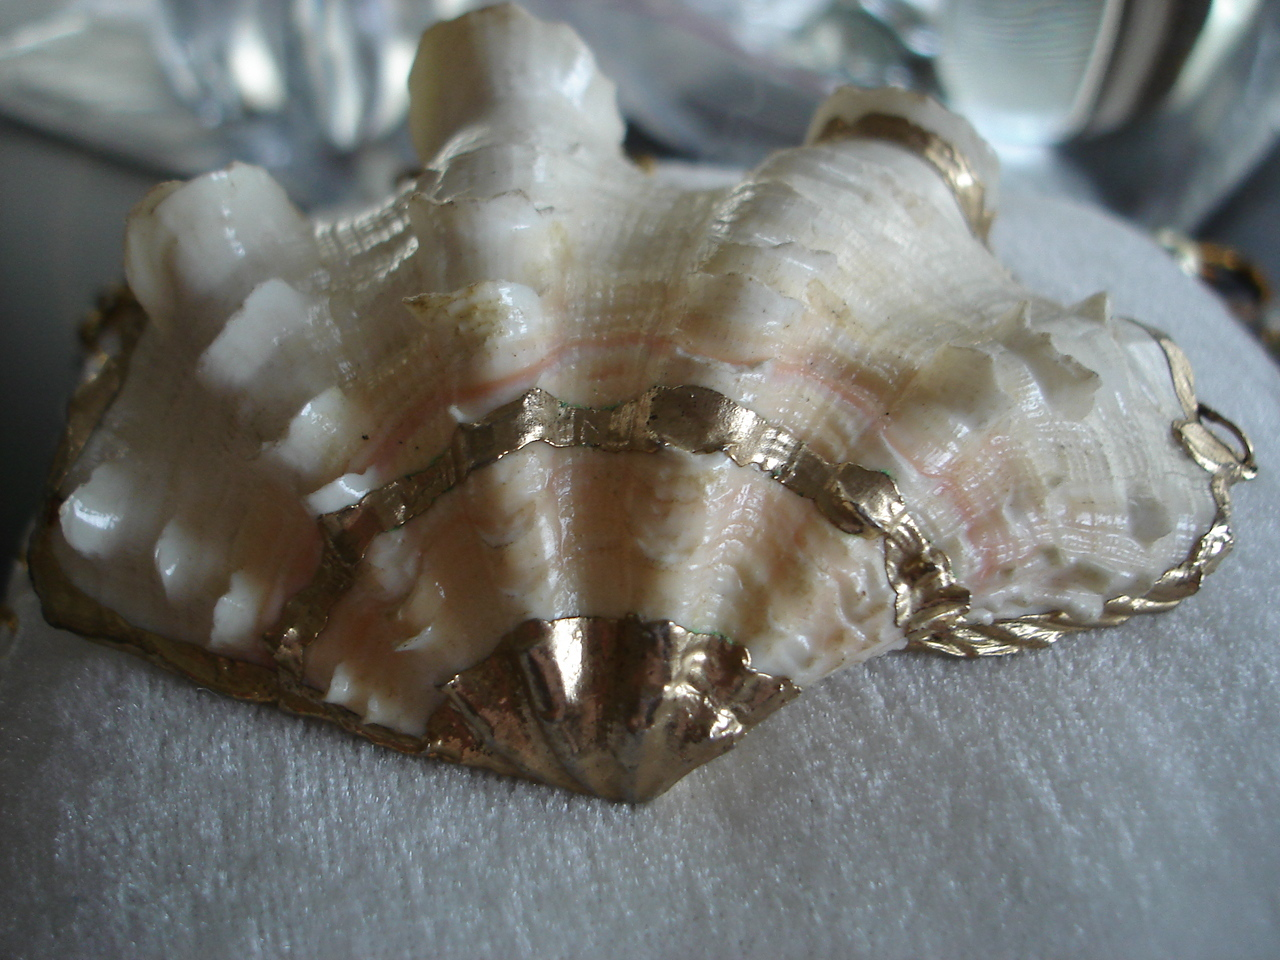 Vintage Large Real Clam Shell Seashell Pendant Necklace